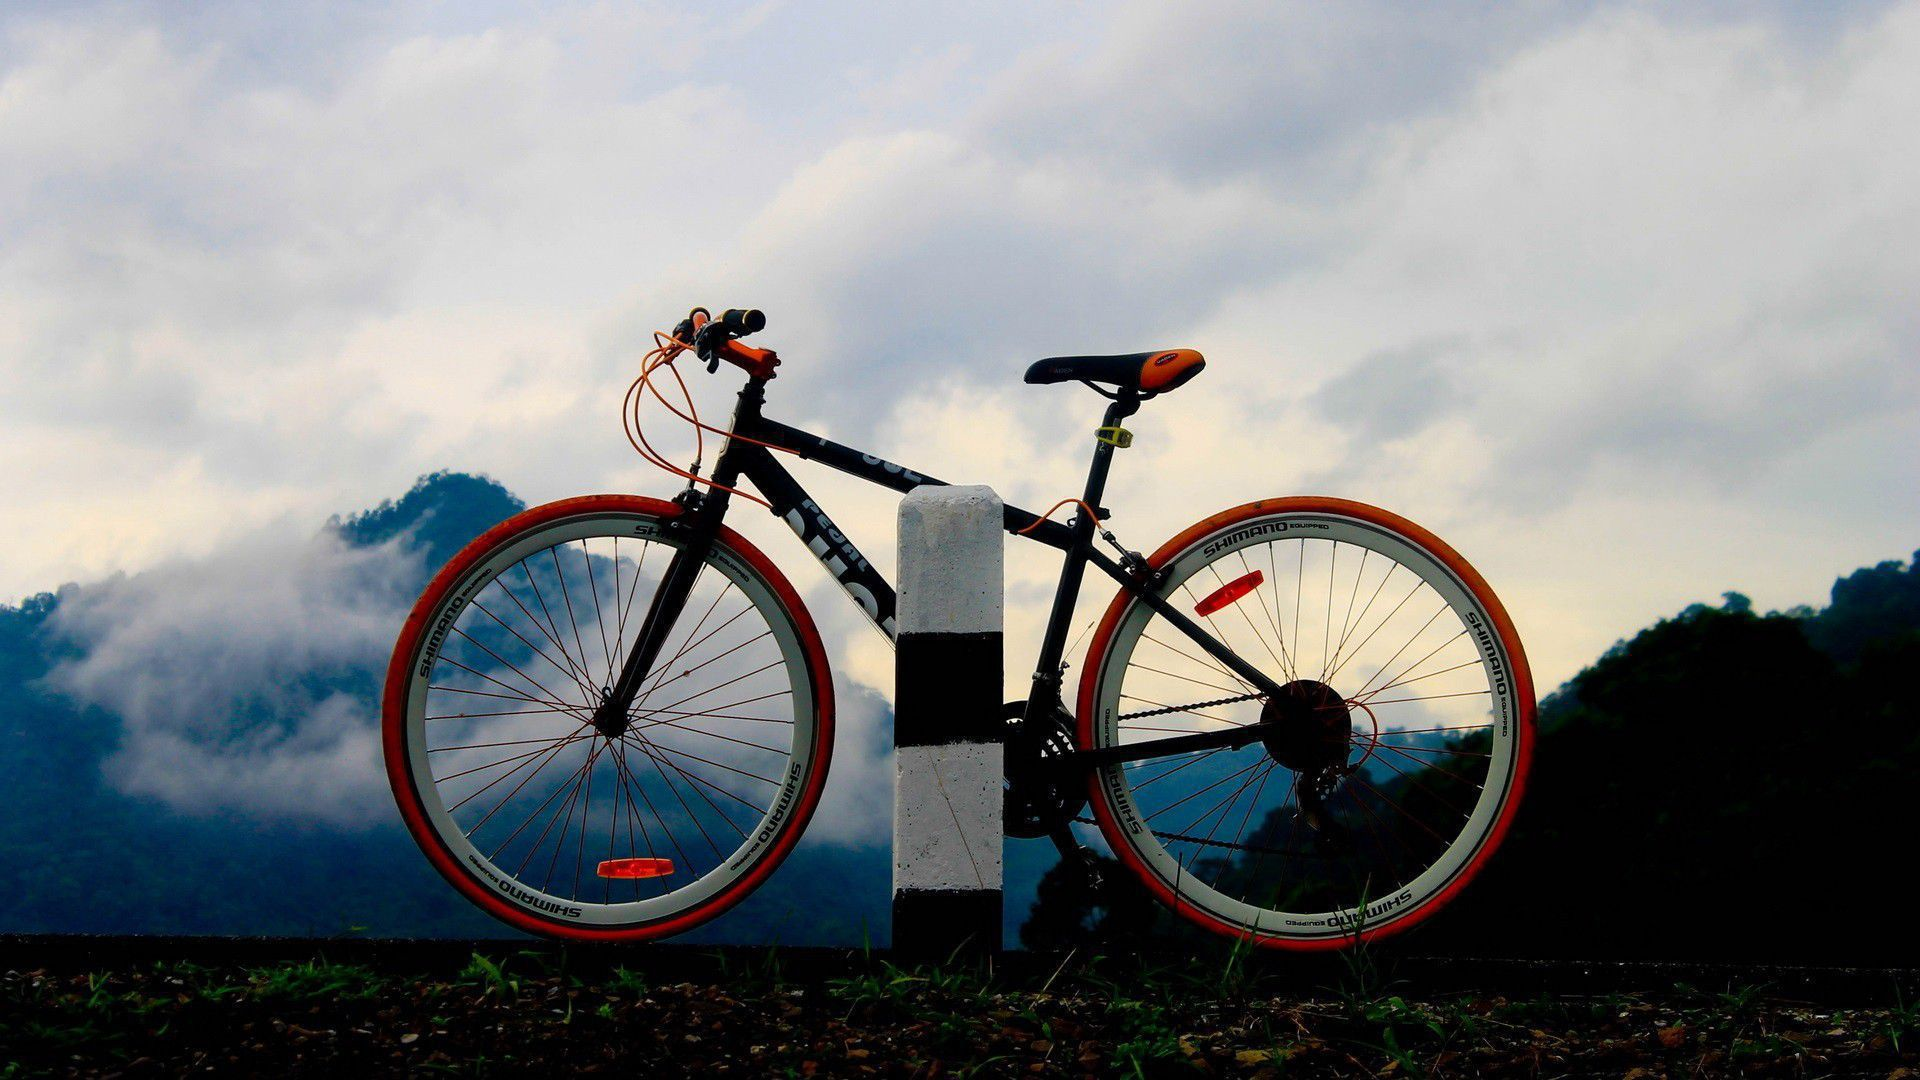 Bicycle High Definition